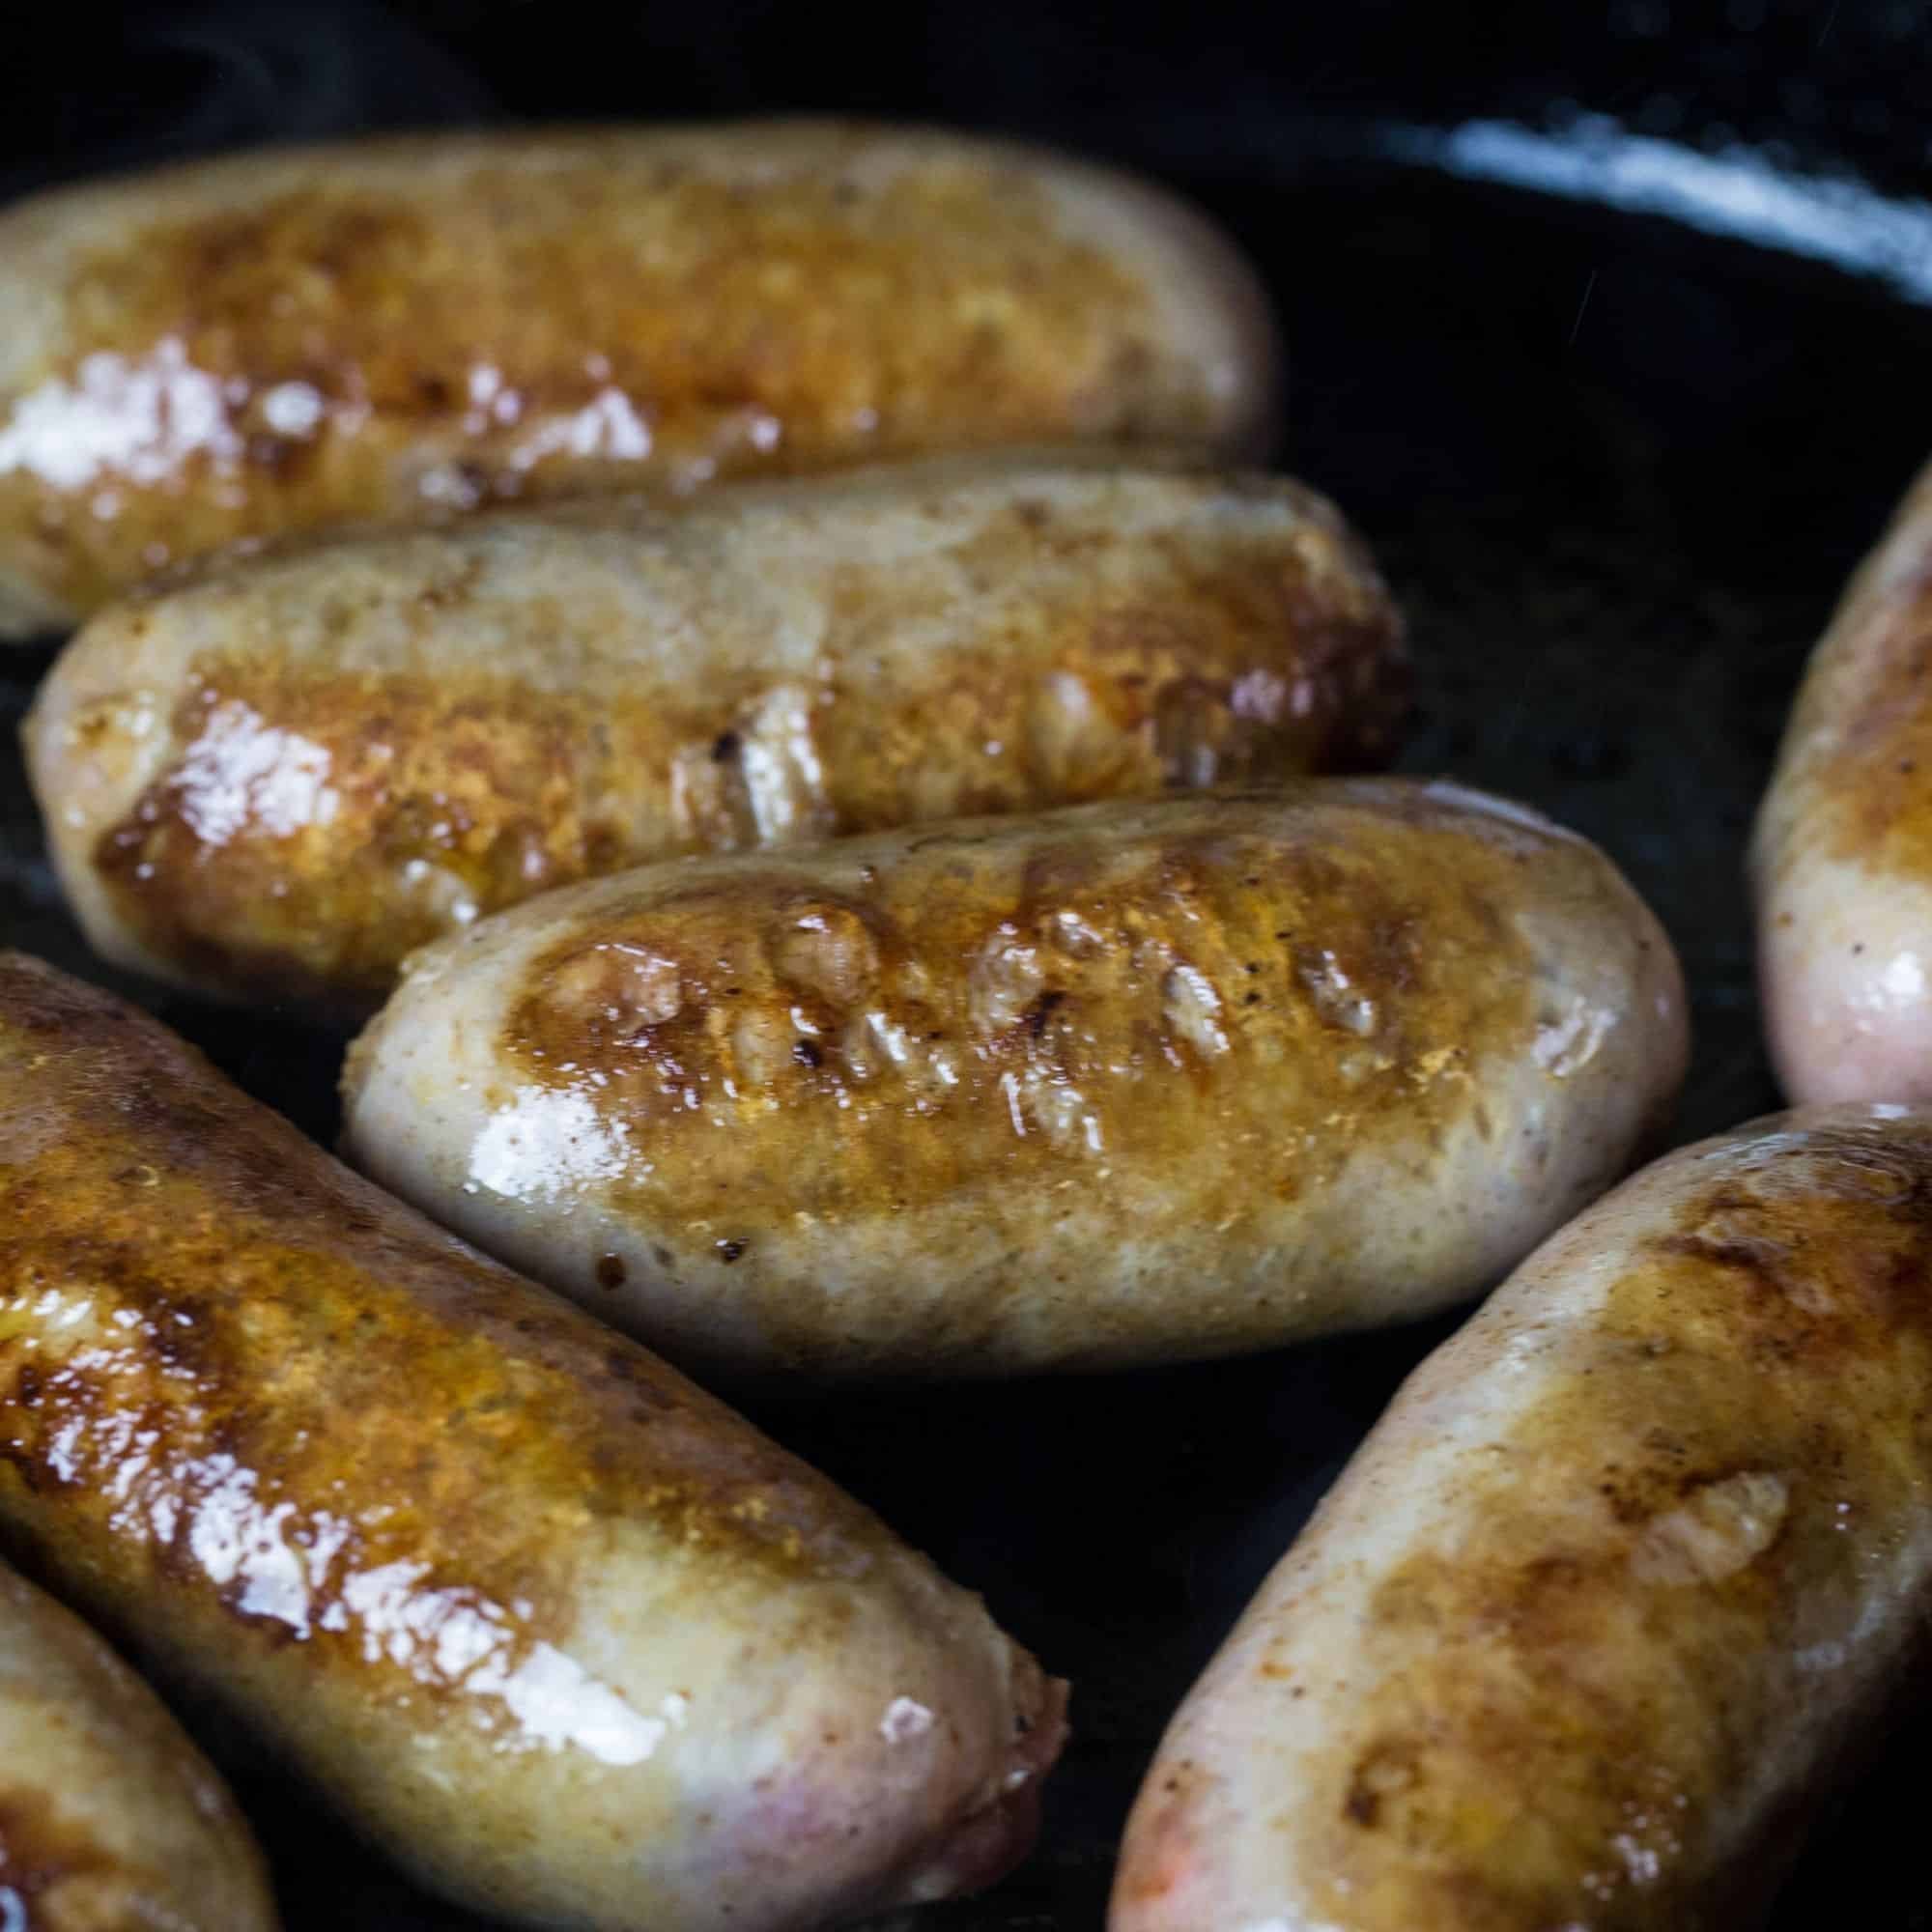 Bangers, Irish sausage being browned on a cast iron skillet.